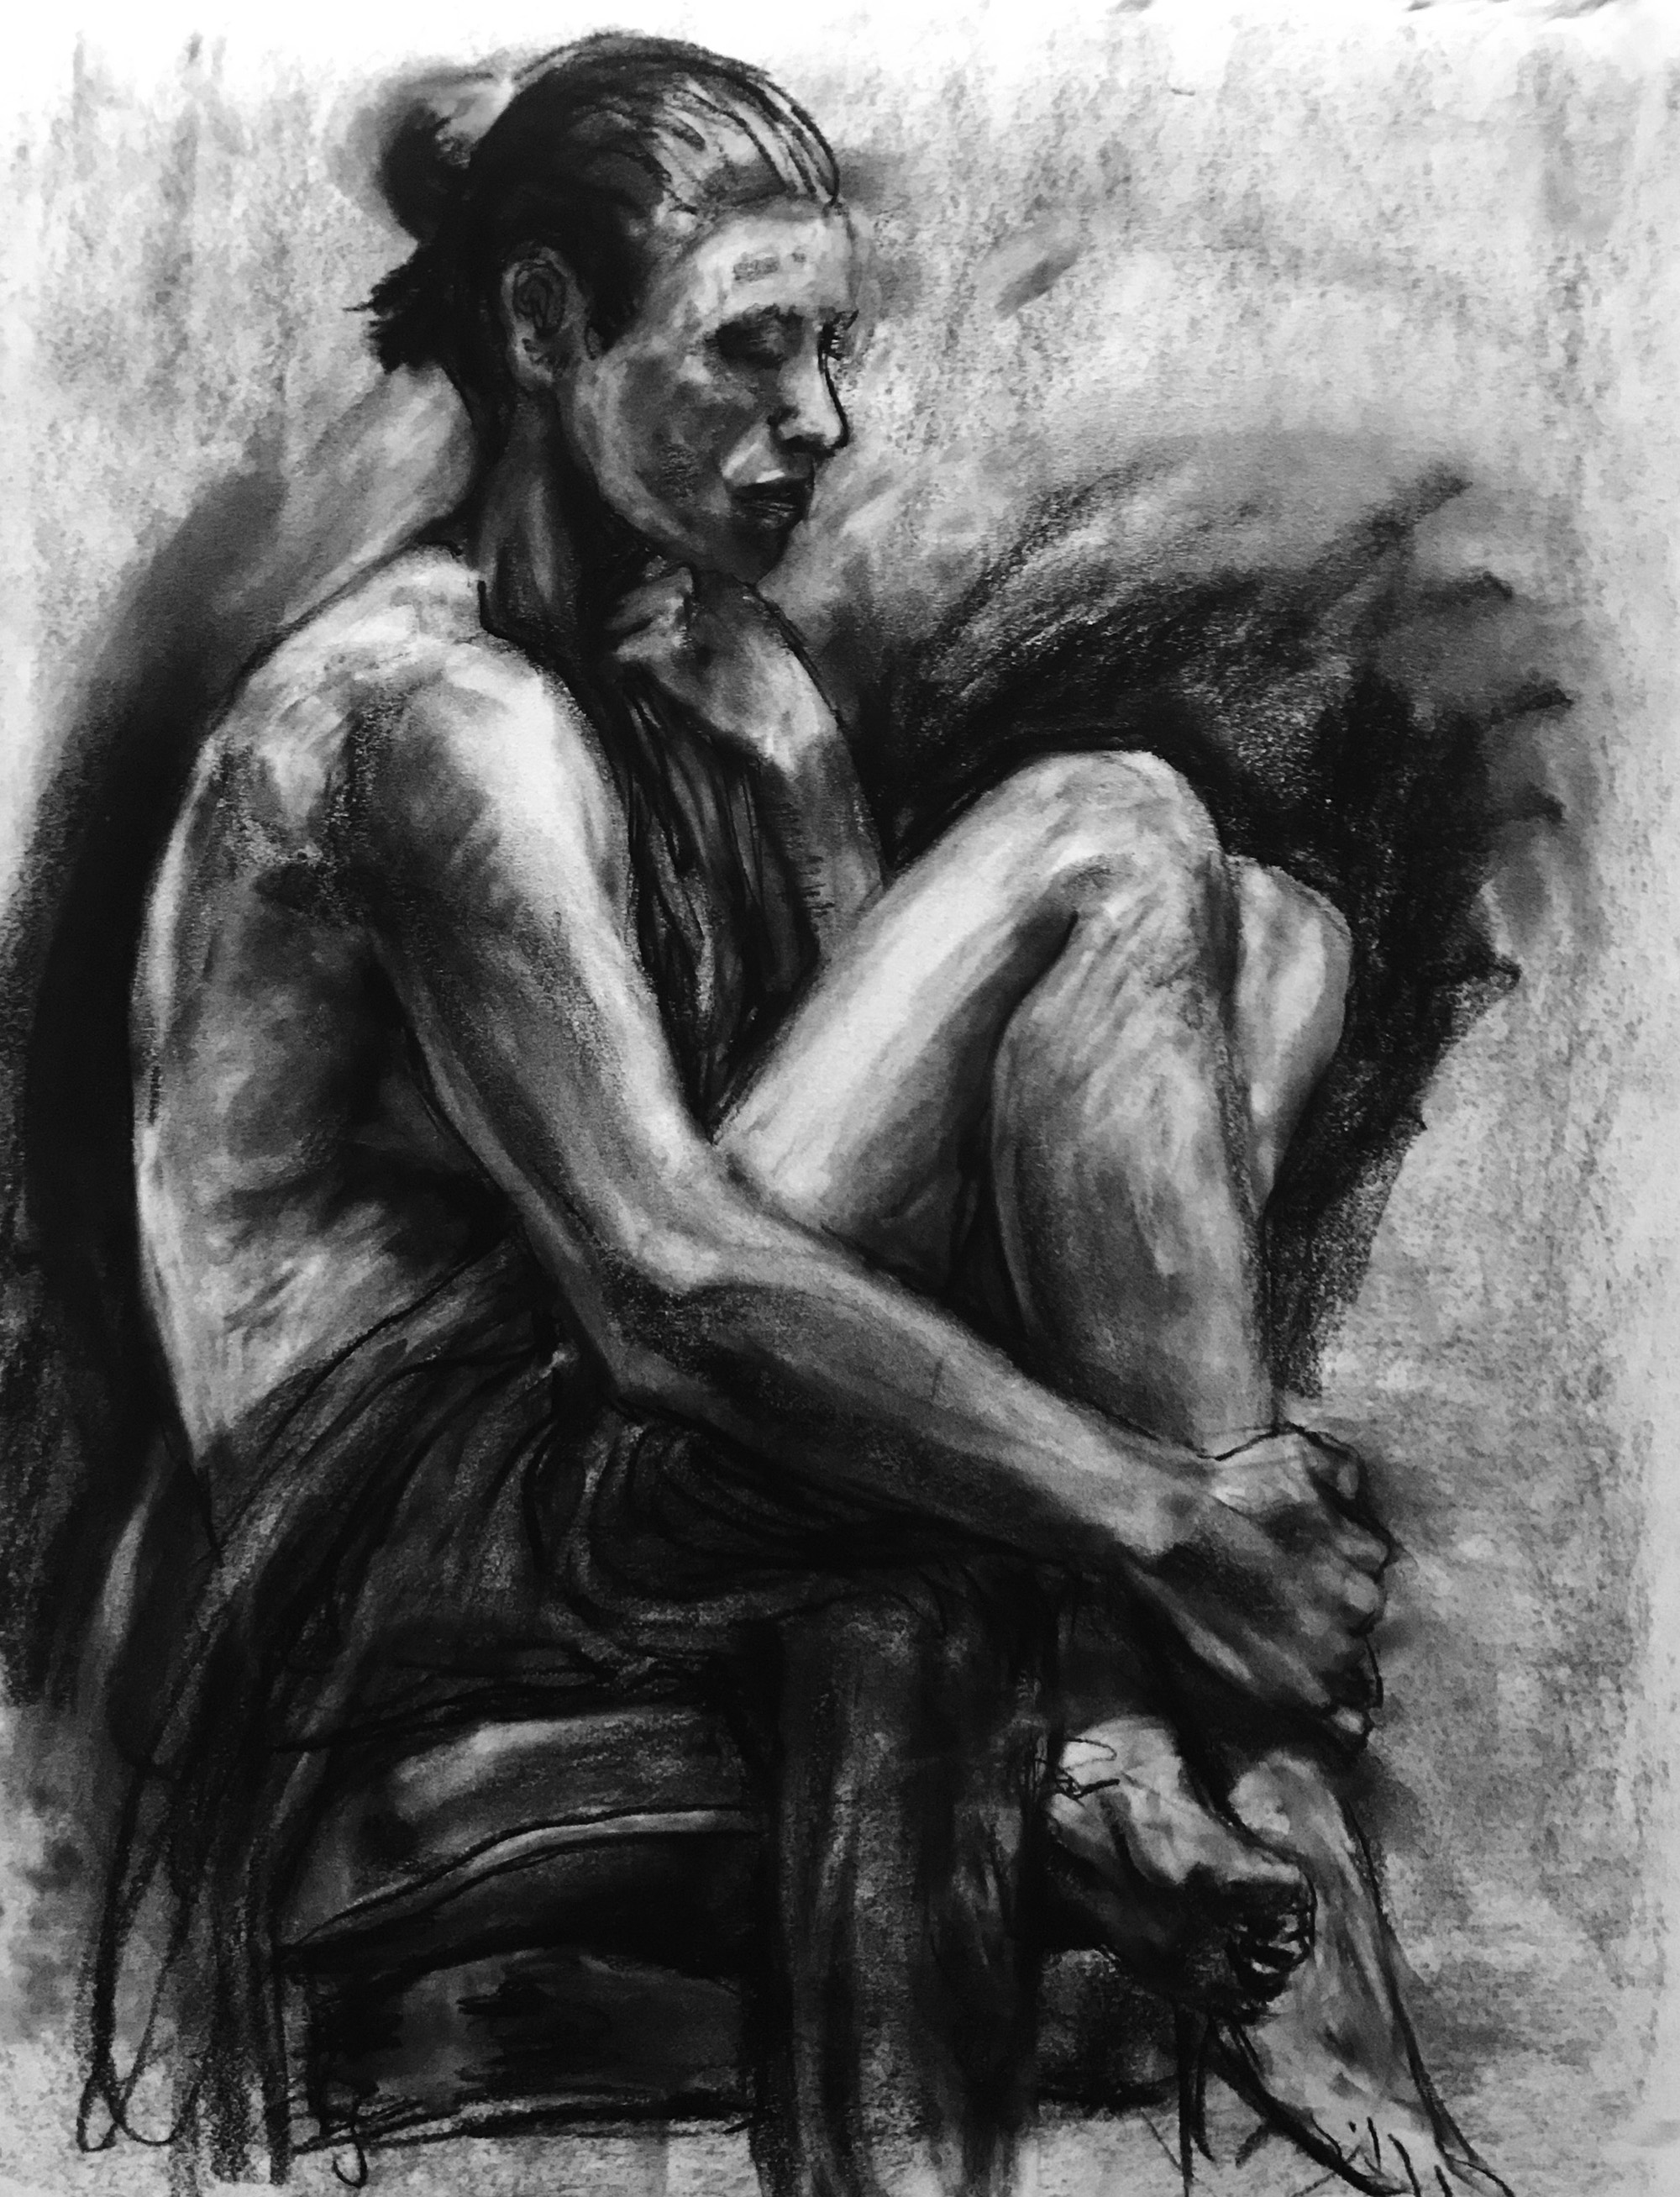 Charcoal sketch of woman.